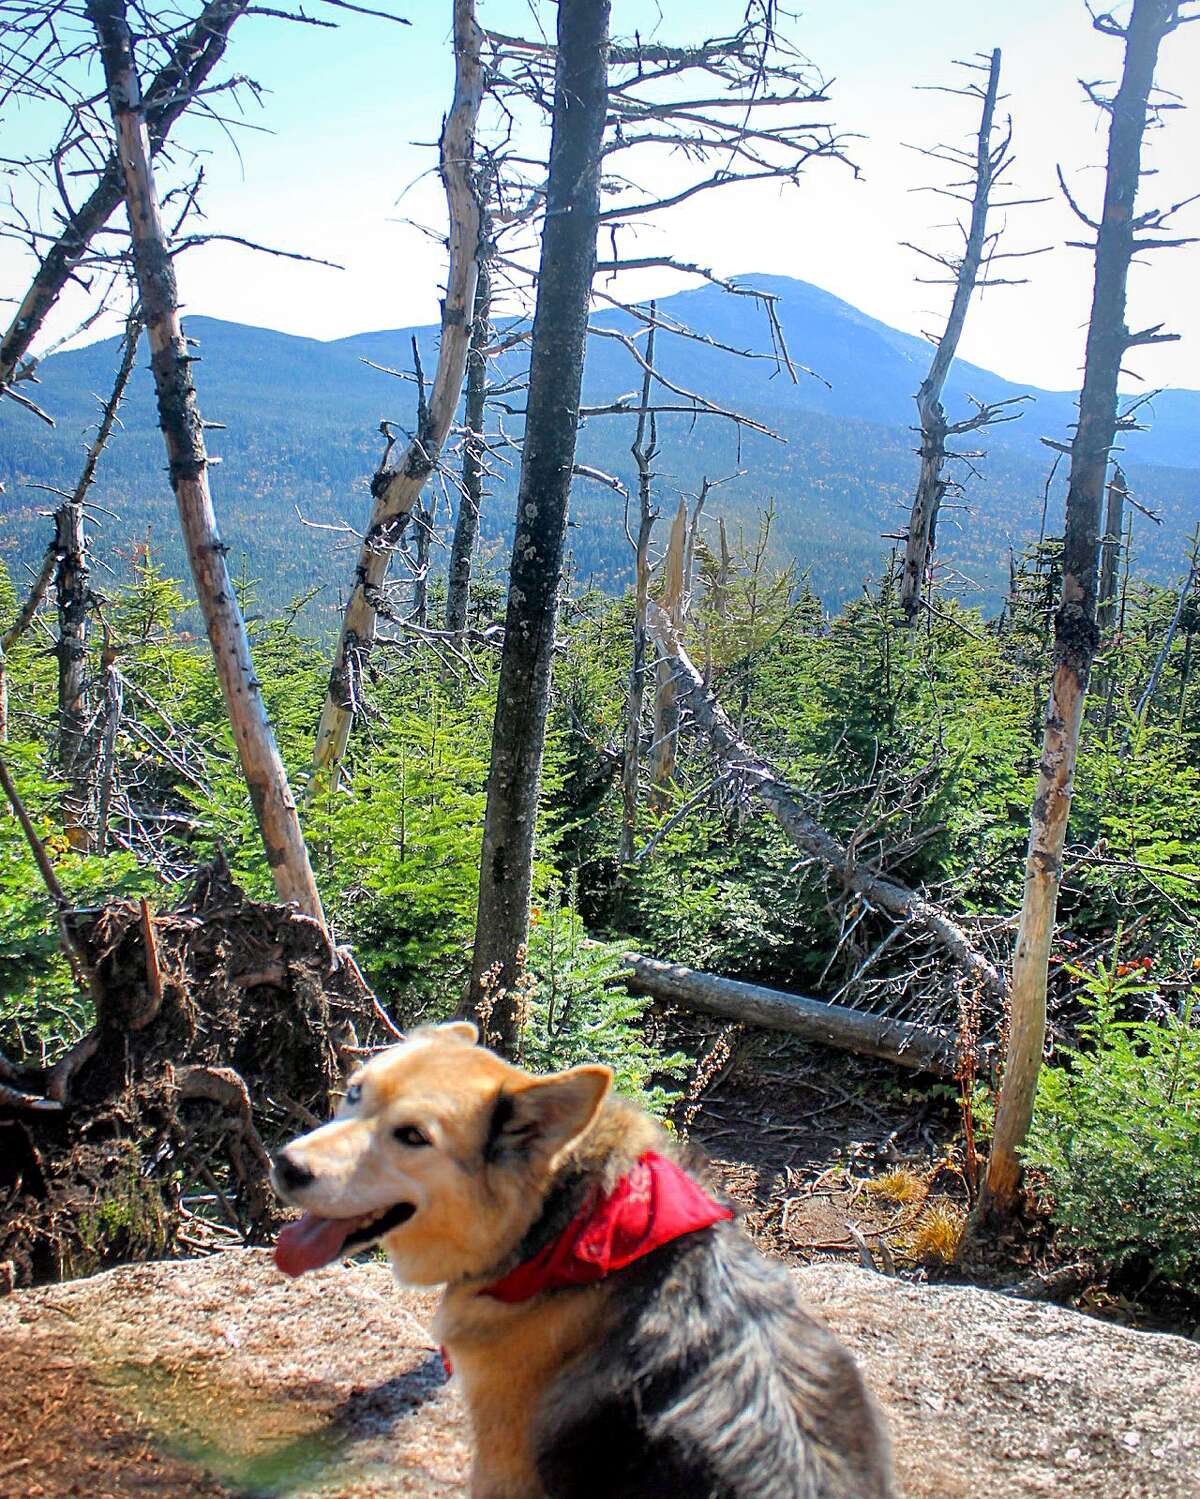 Ariel, a husky-golden retriever-Labrador mix has just one of the 46 Adirondack High Peaks remaining to climb with her owner, Amber Pitcher of East Berne. (Provided photo)